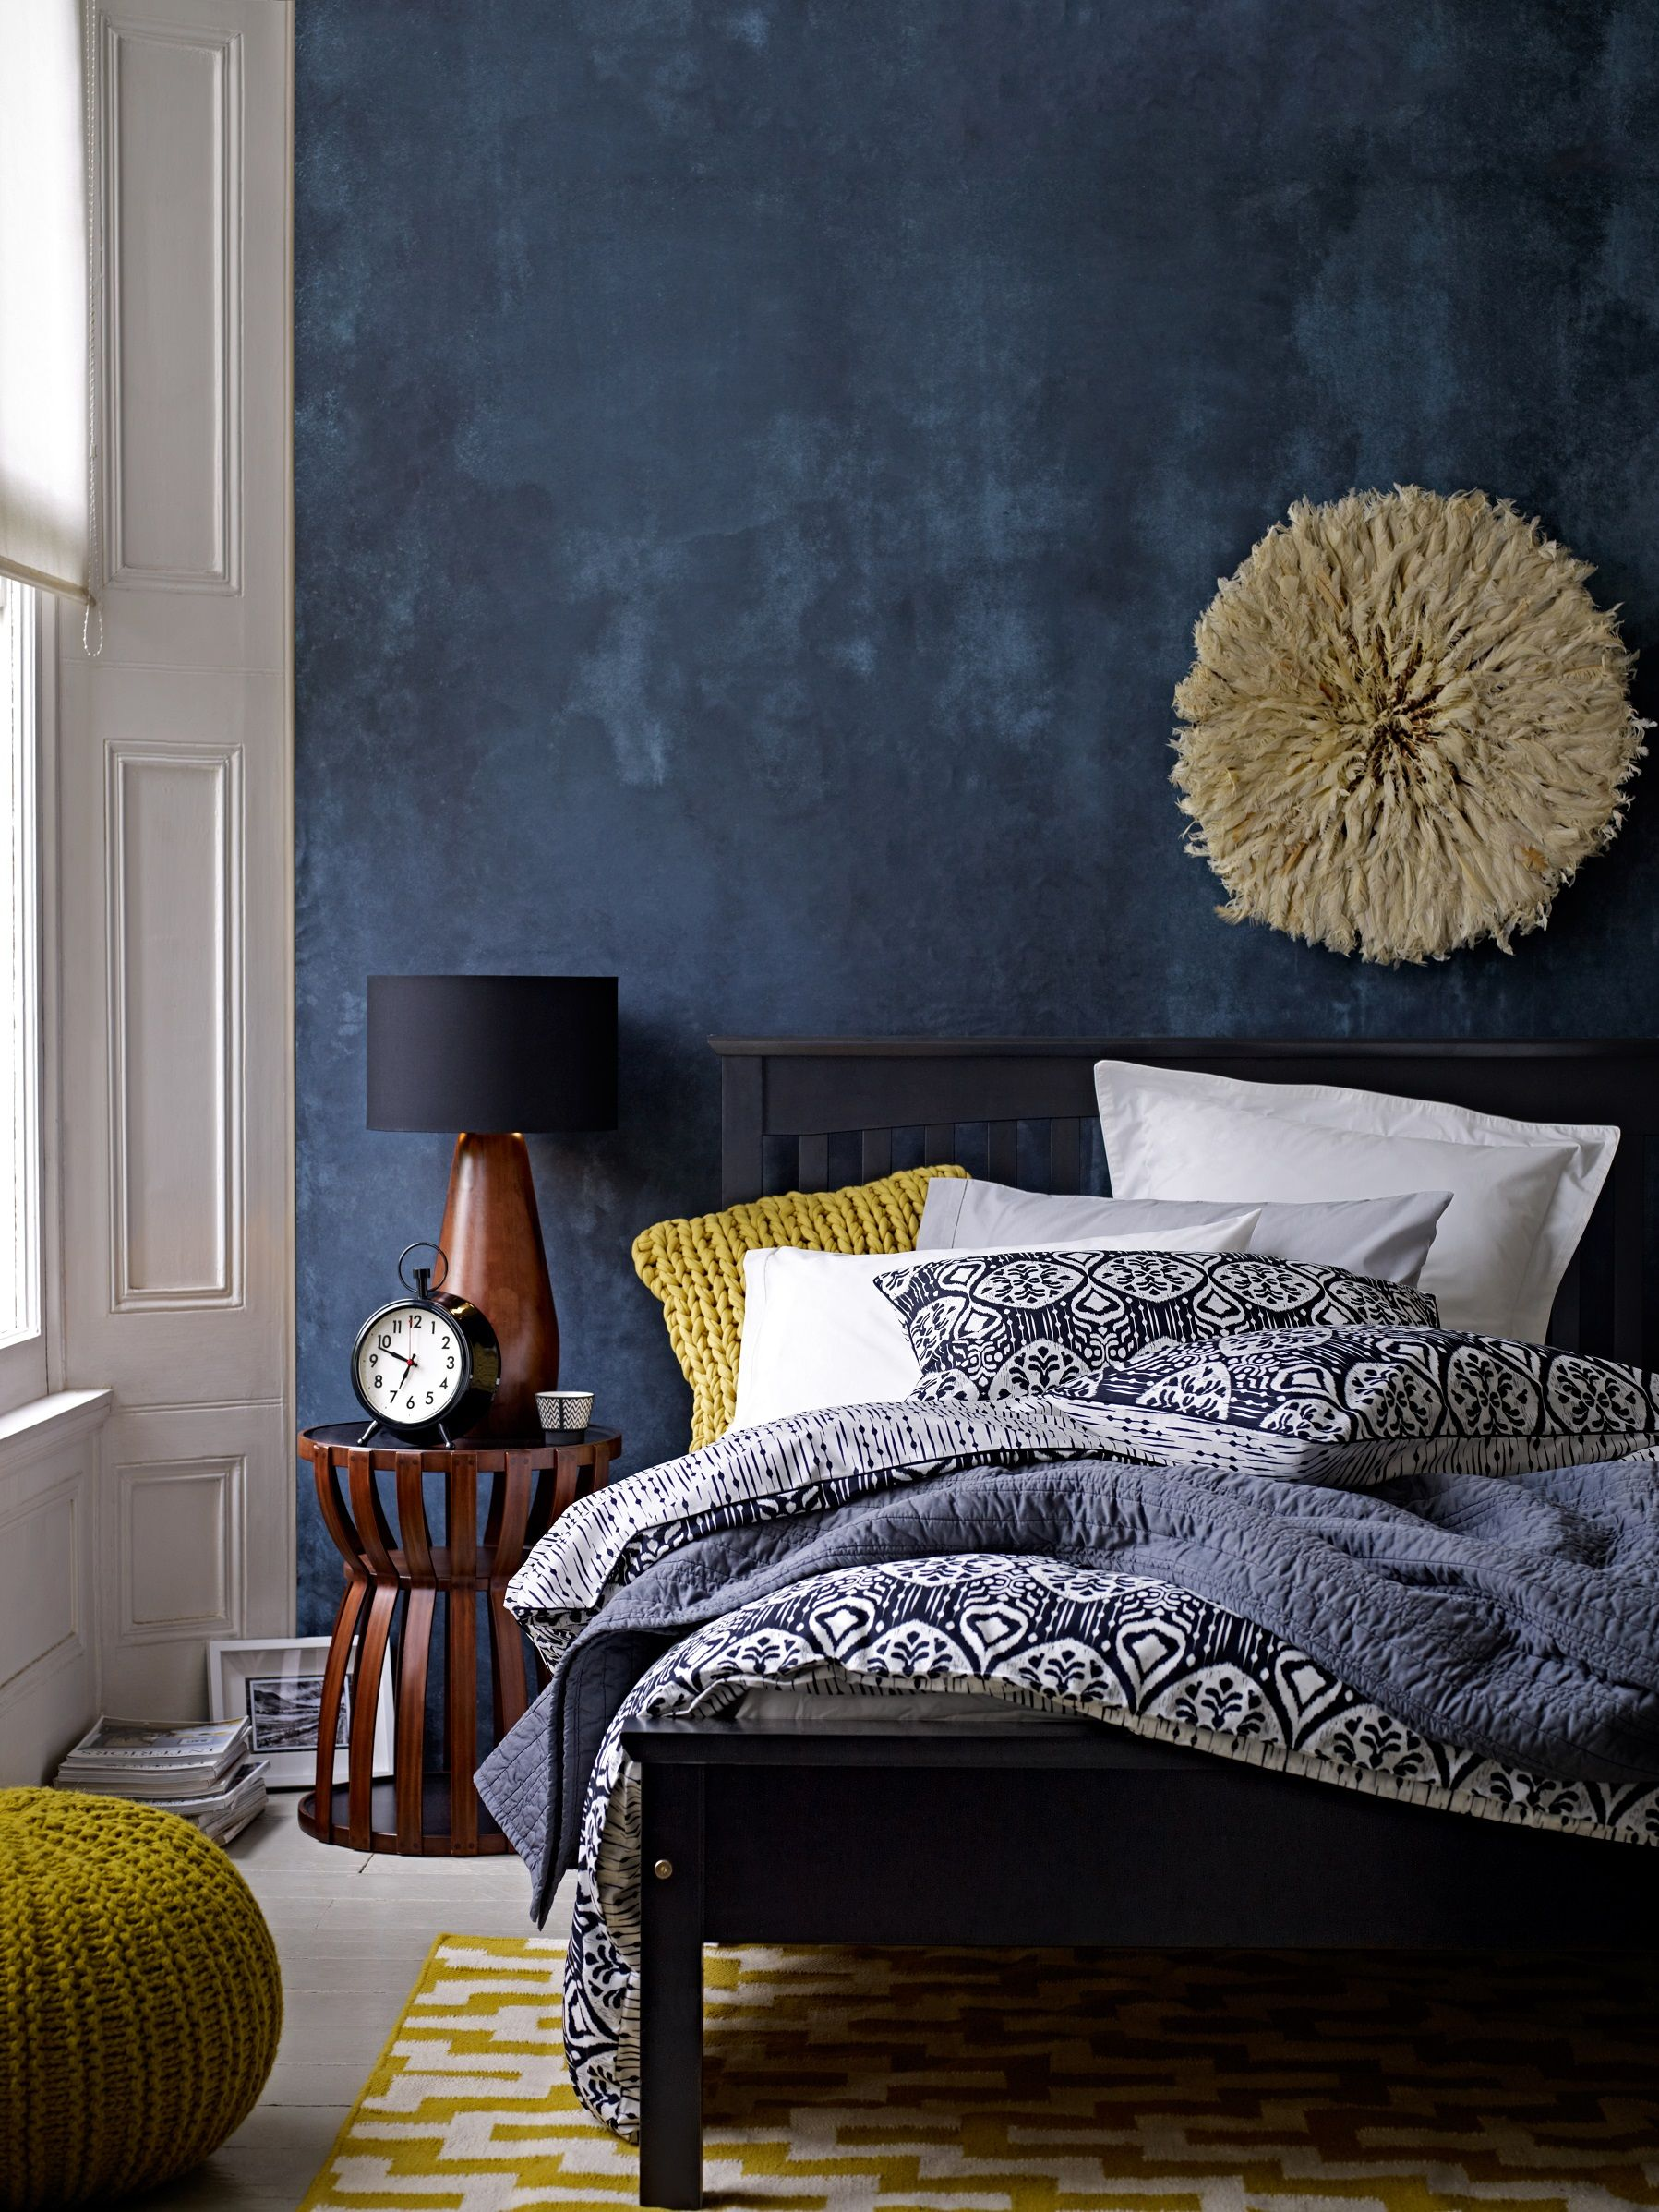 deep blue accent wall in modern eclectic bedroom - gorgeous use of